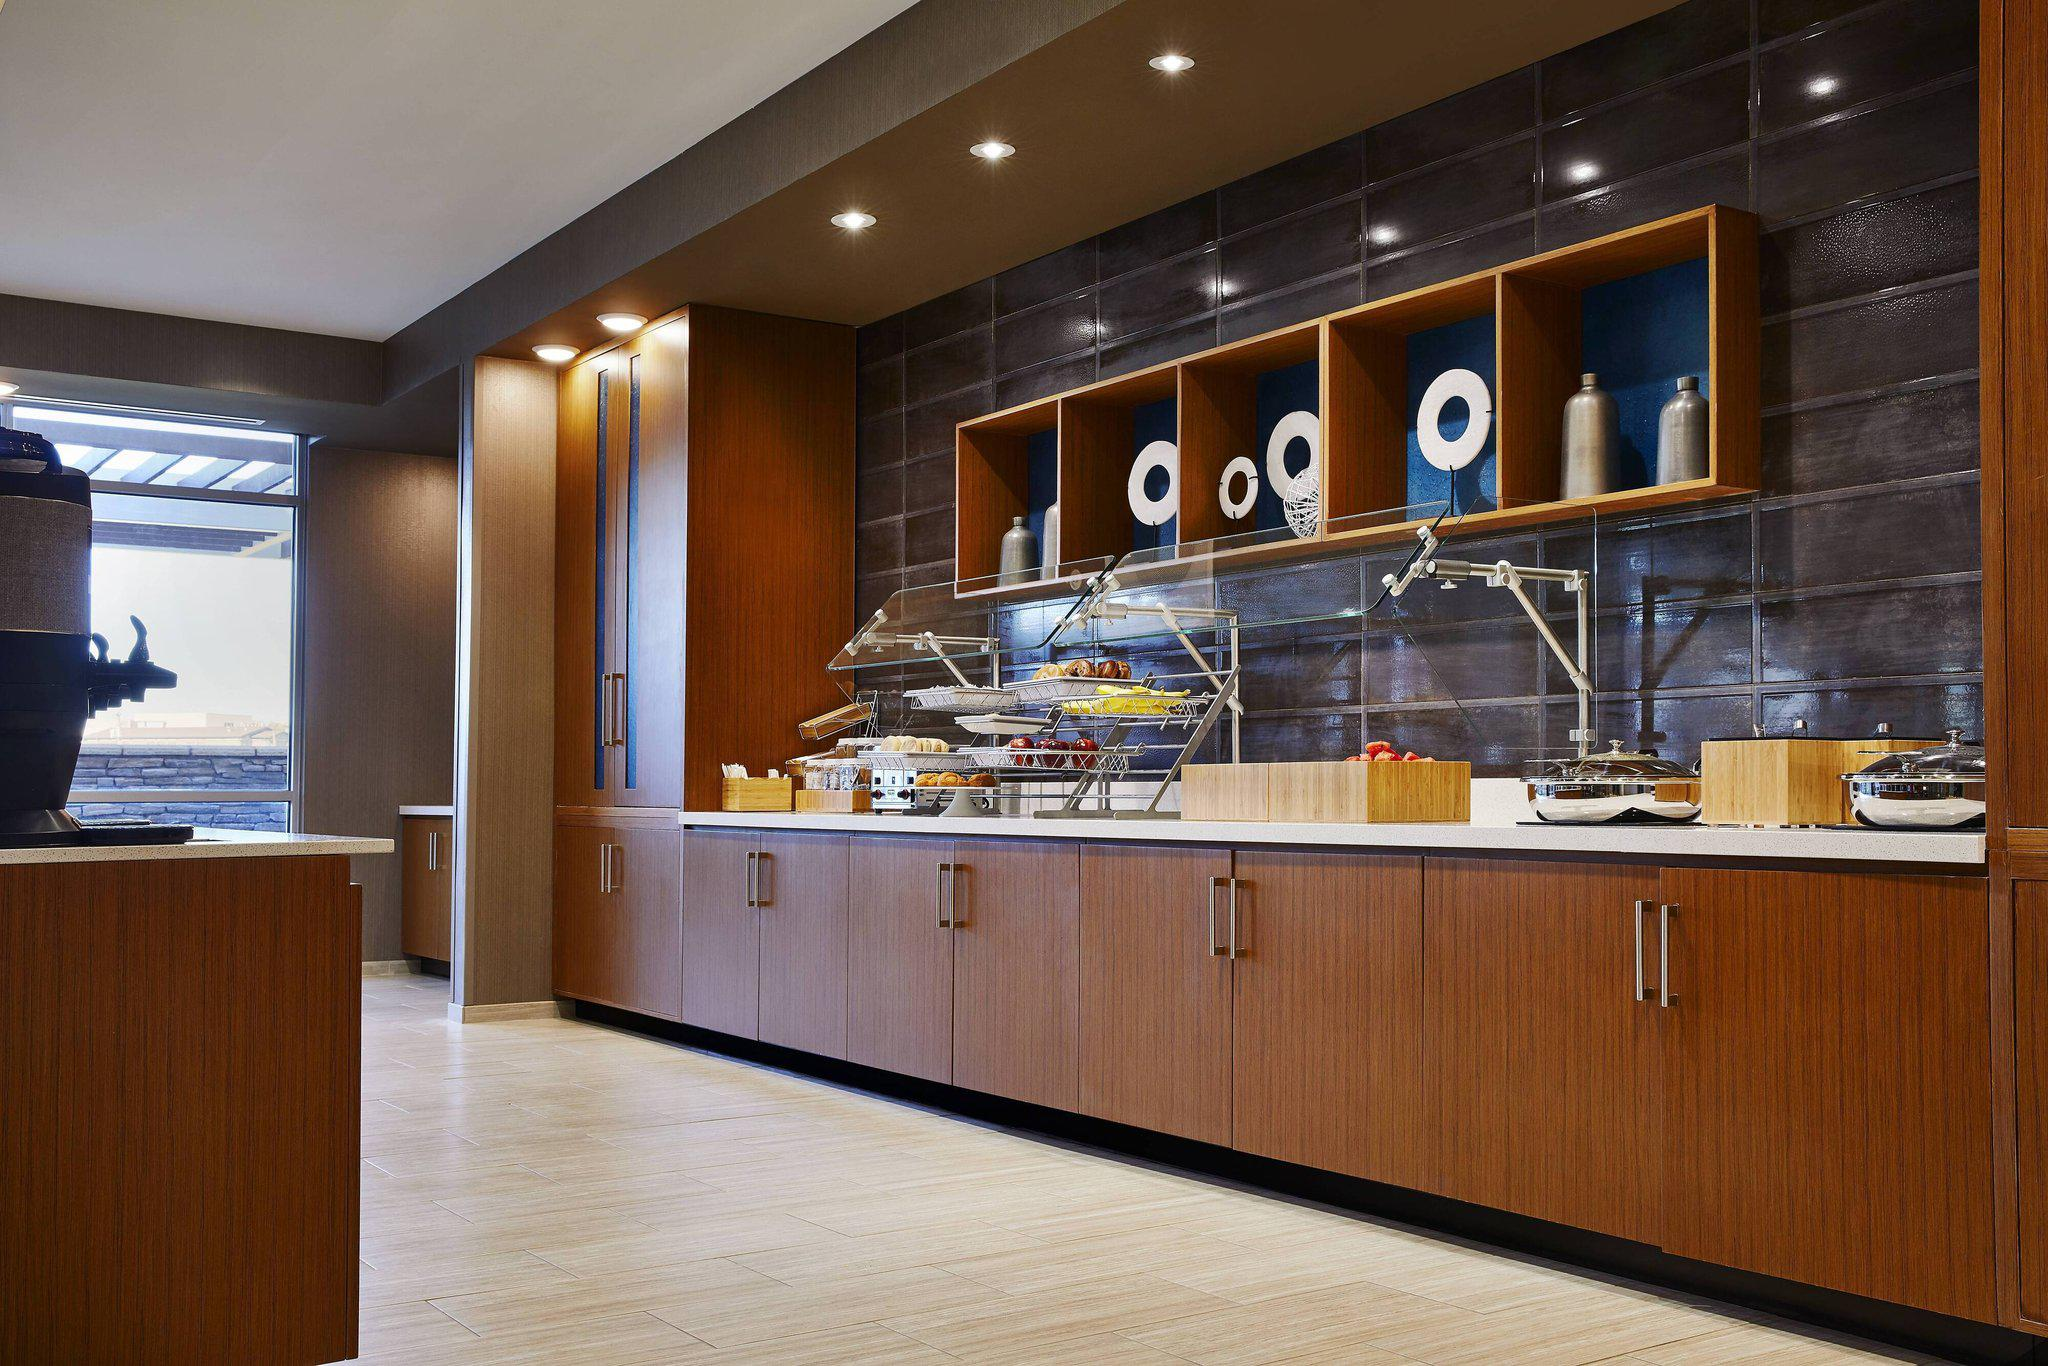 SpringHill Suites by Marriott Springfield North